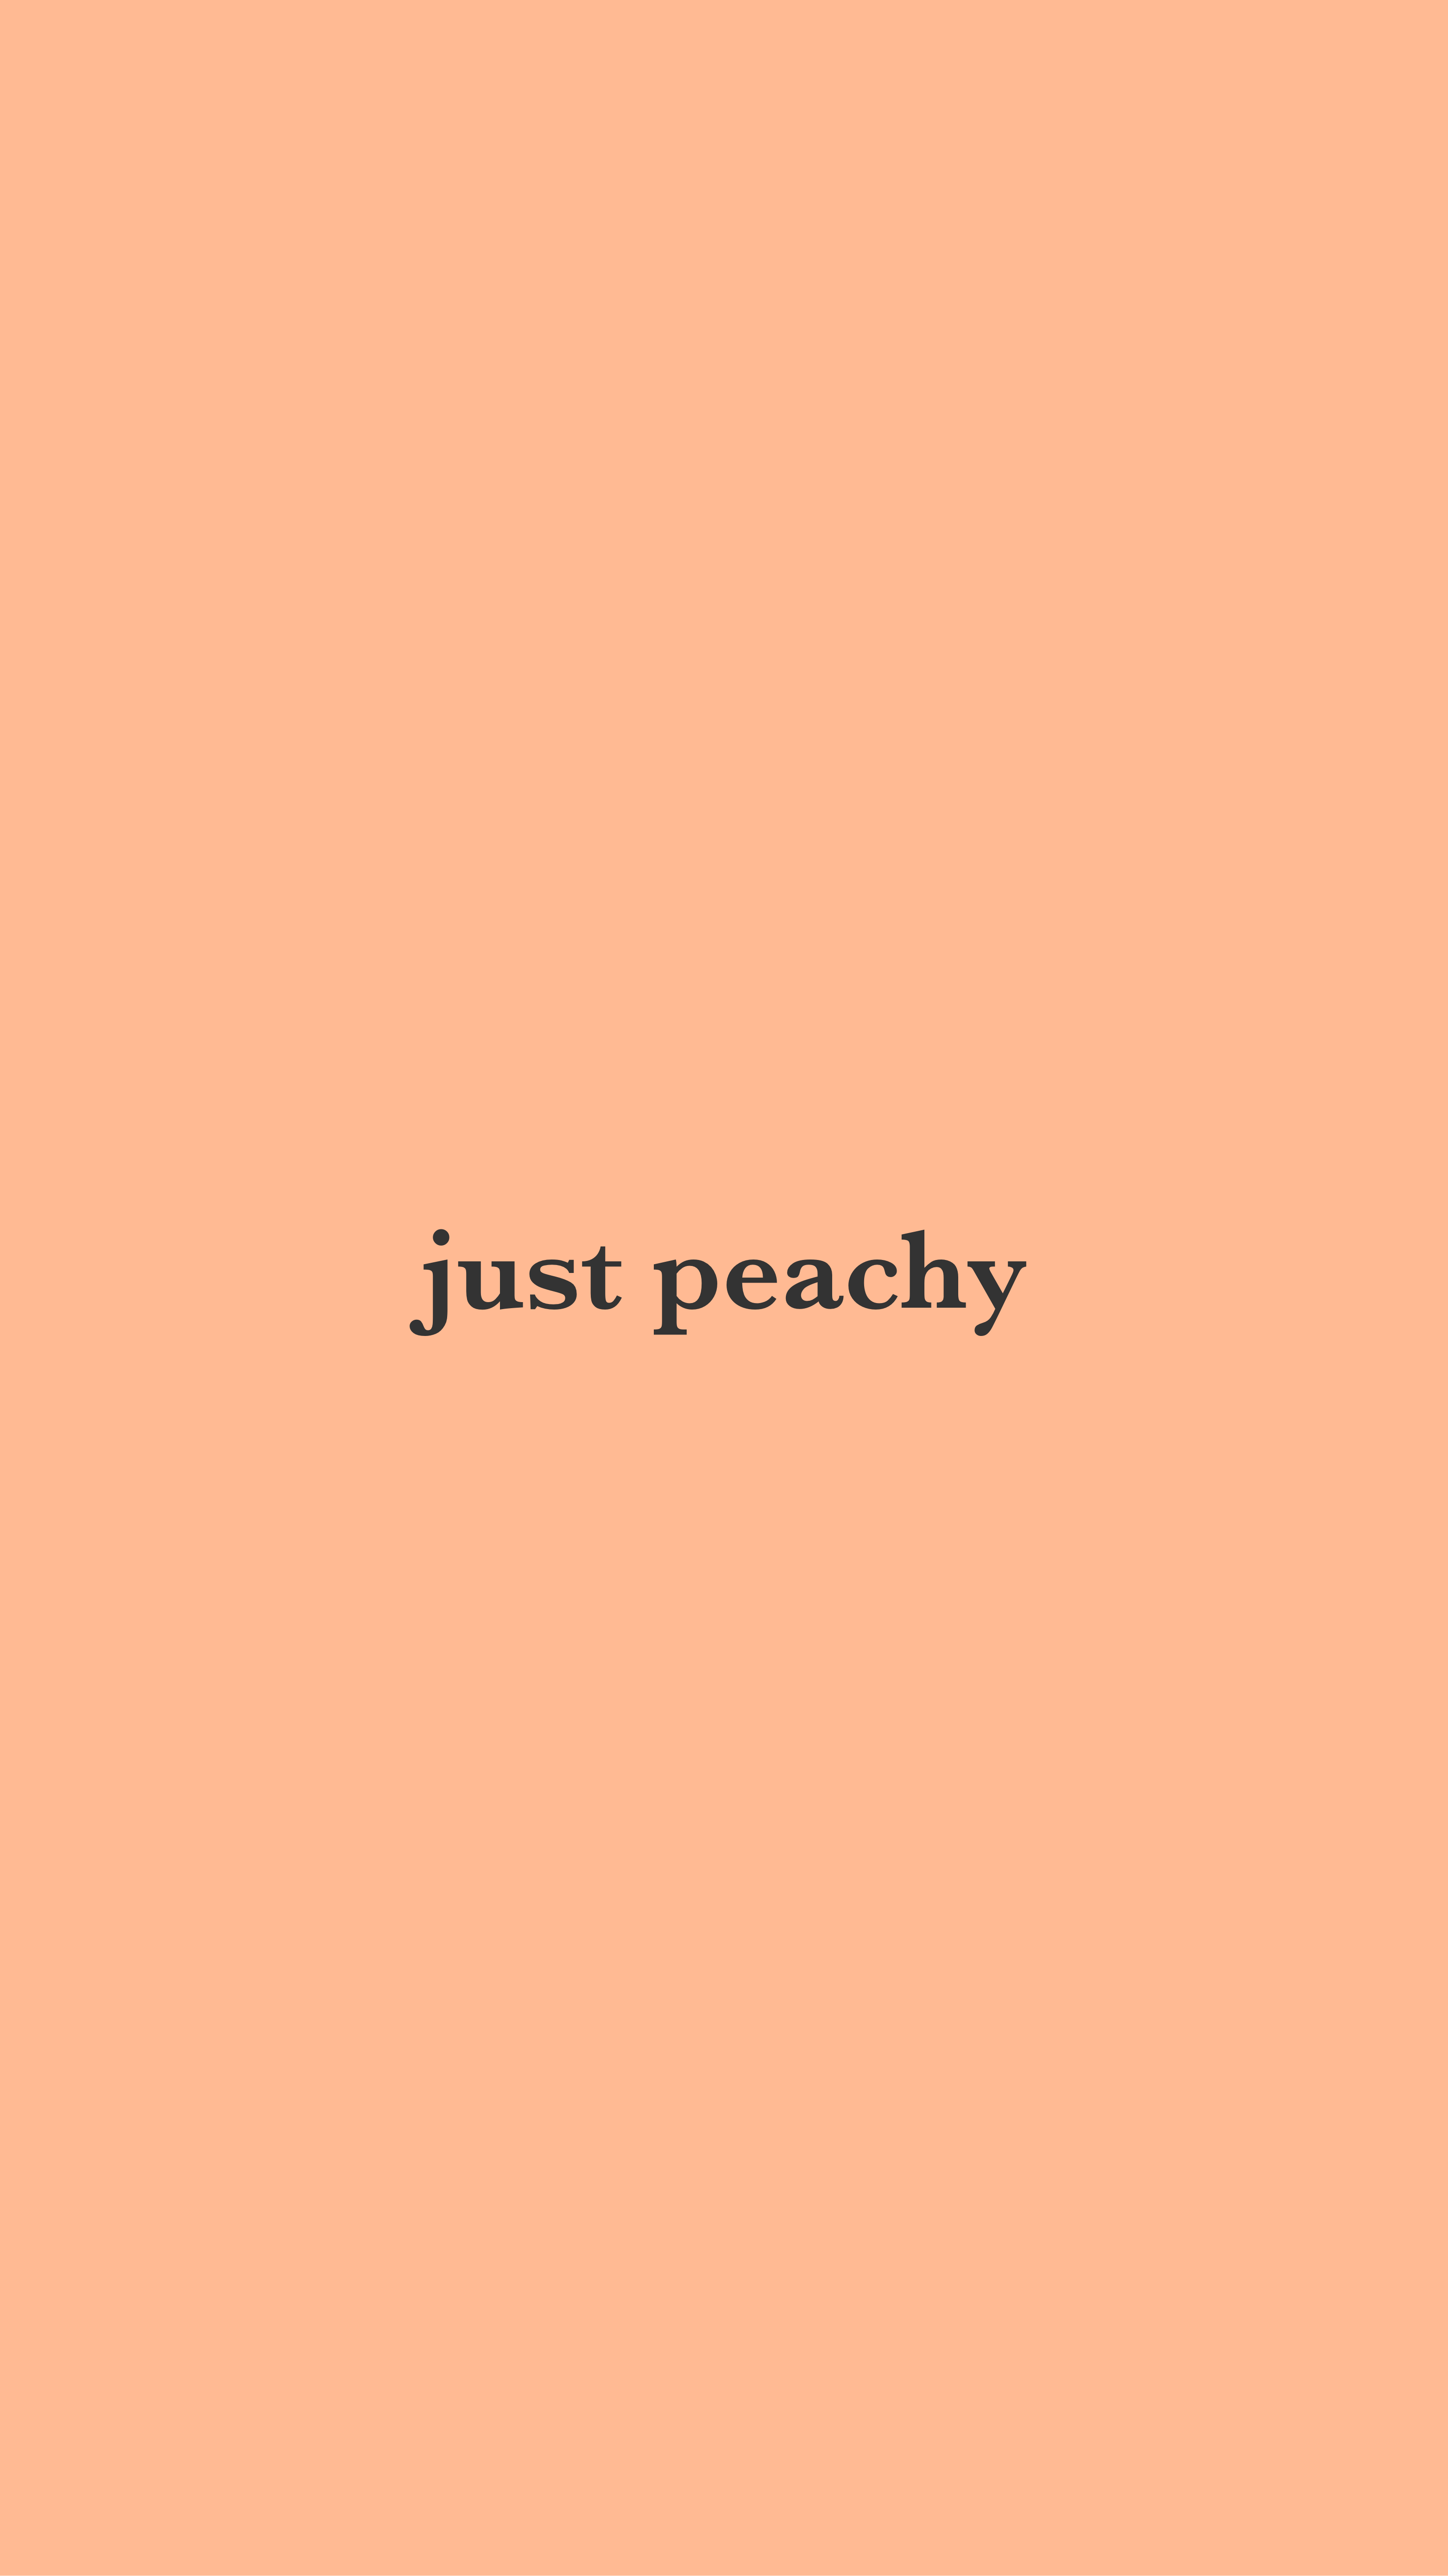 peach color aesthetic wallpapers top free peach color aesthetic backgrounds wallpaperaccess wallpaperaccess